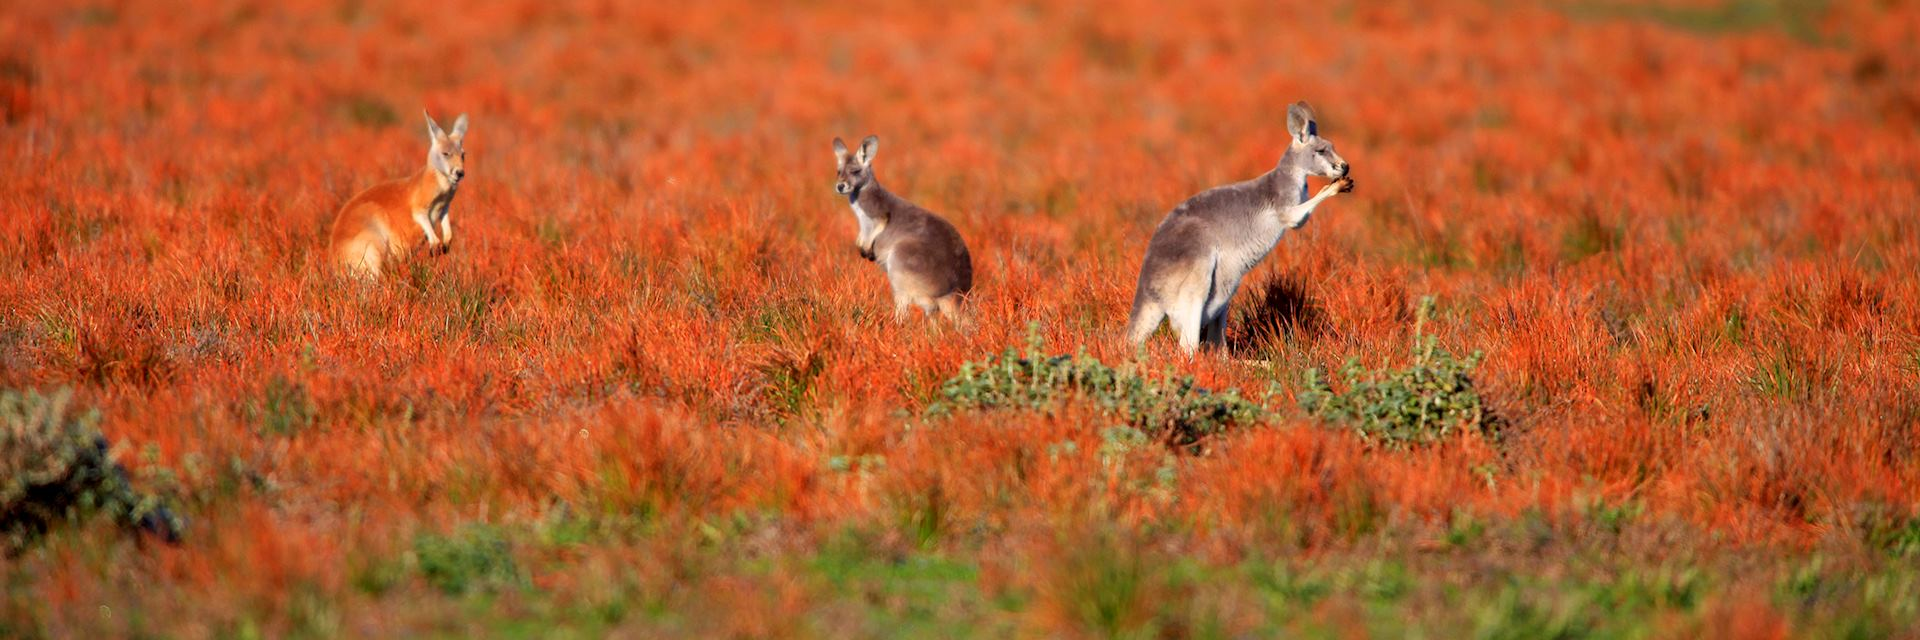 Kangaroos at Flinders Ranges, South Australia